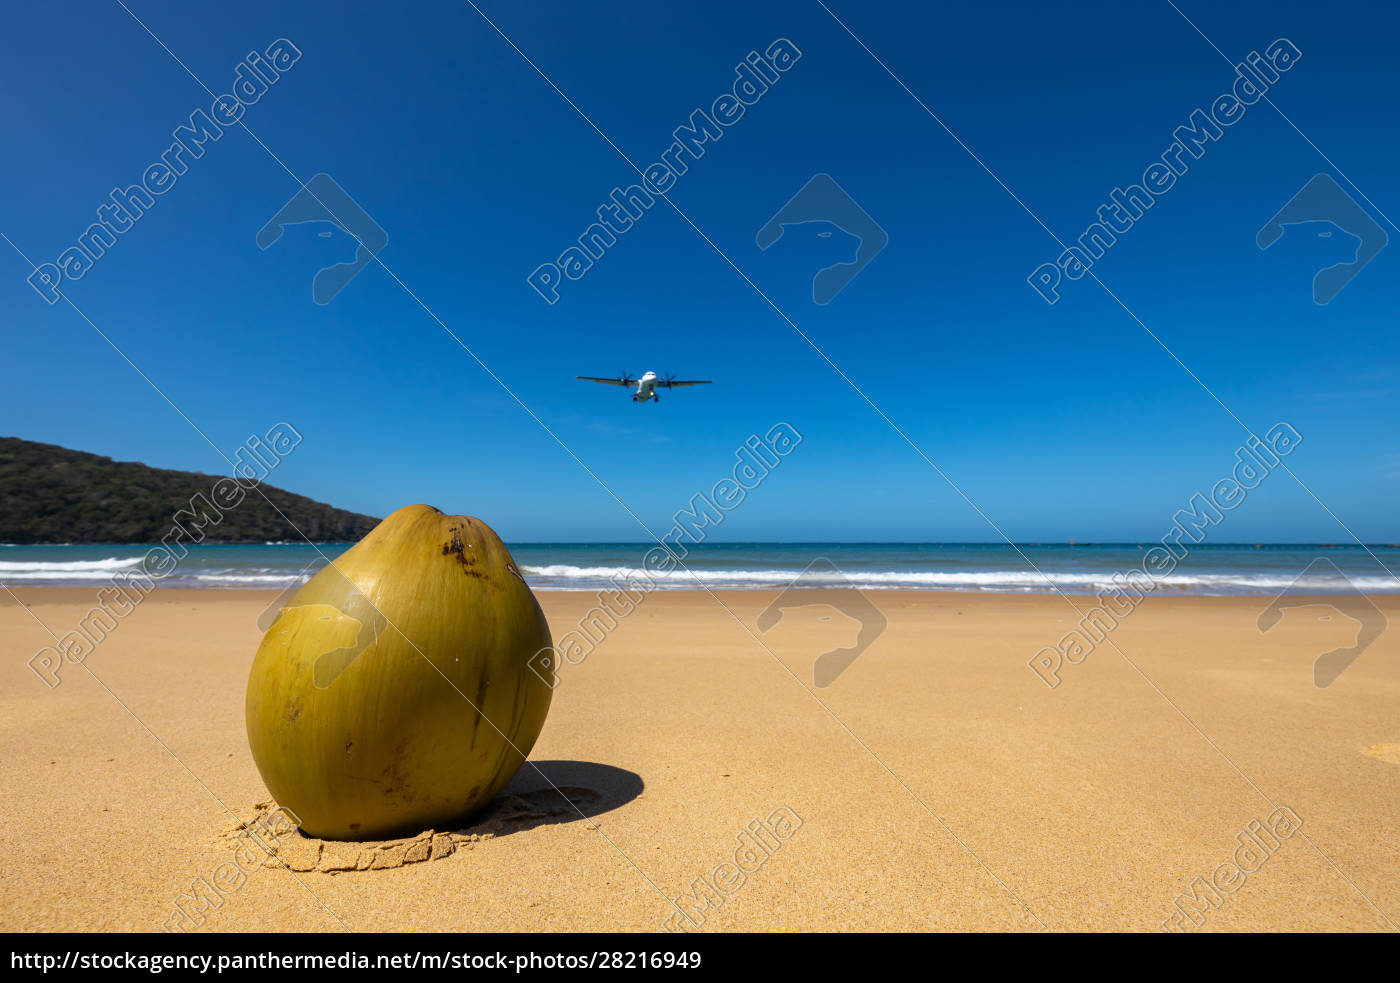 airplane, is, landing, on, con, dao - 28216949